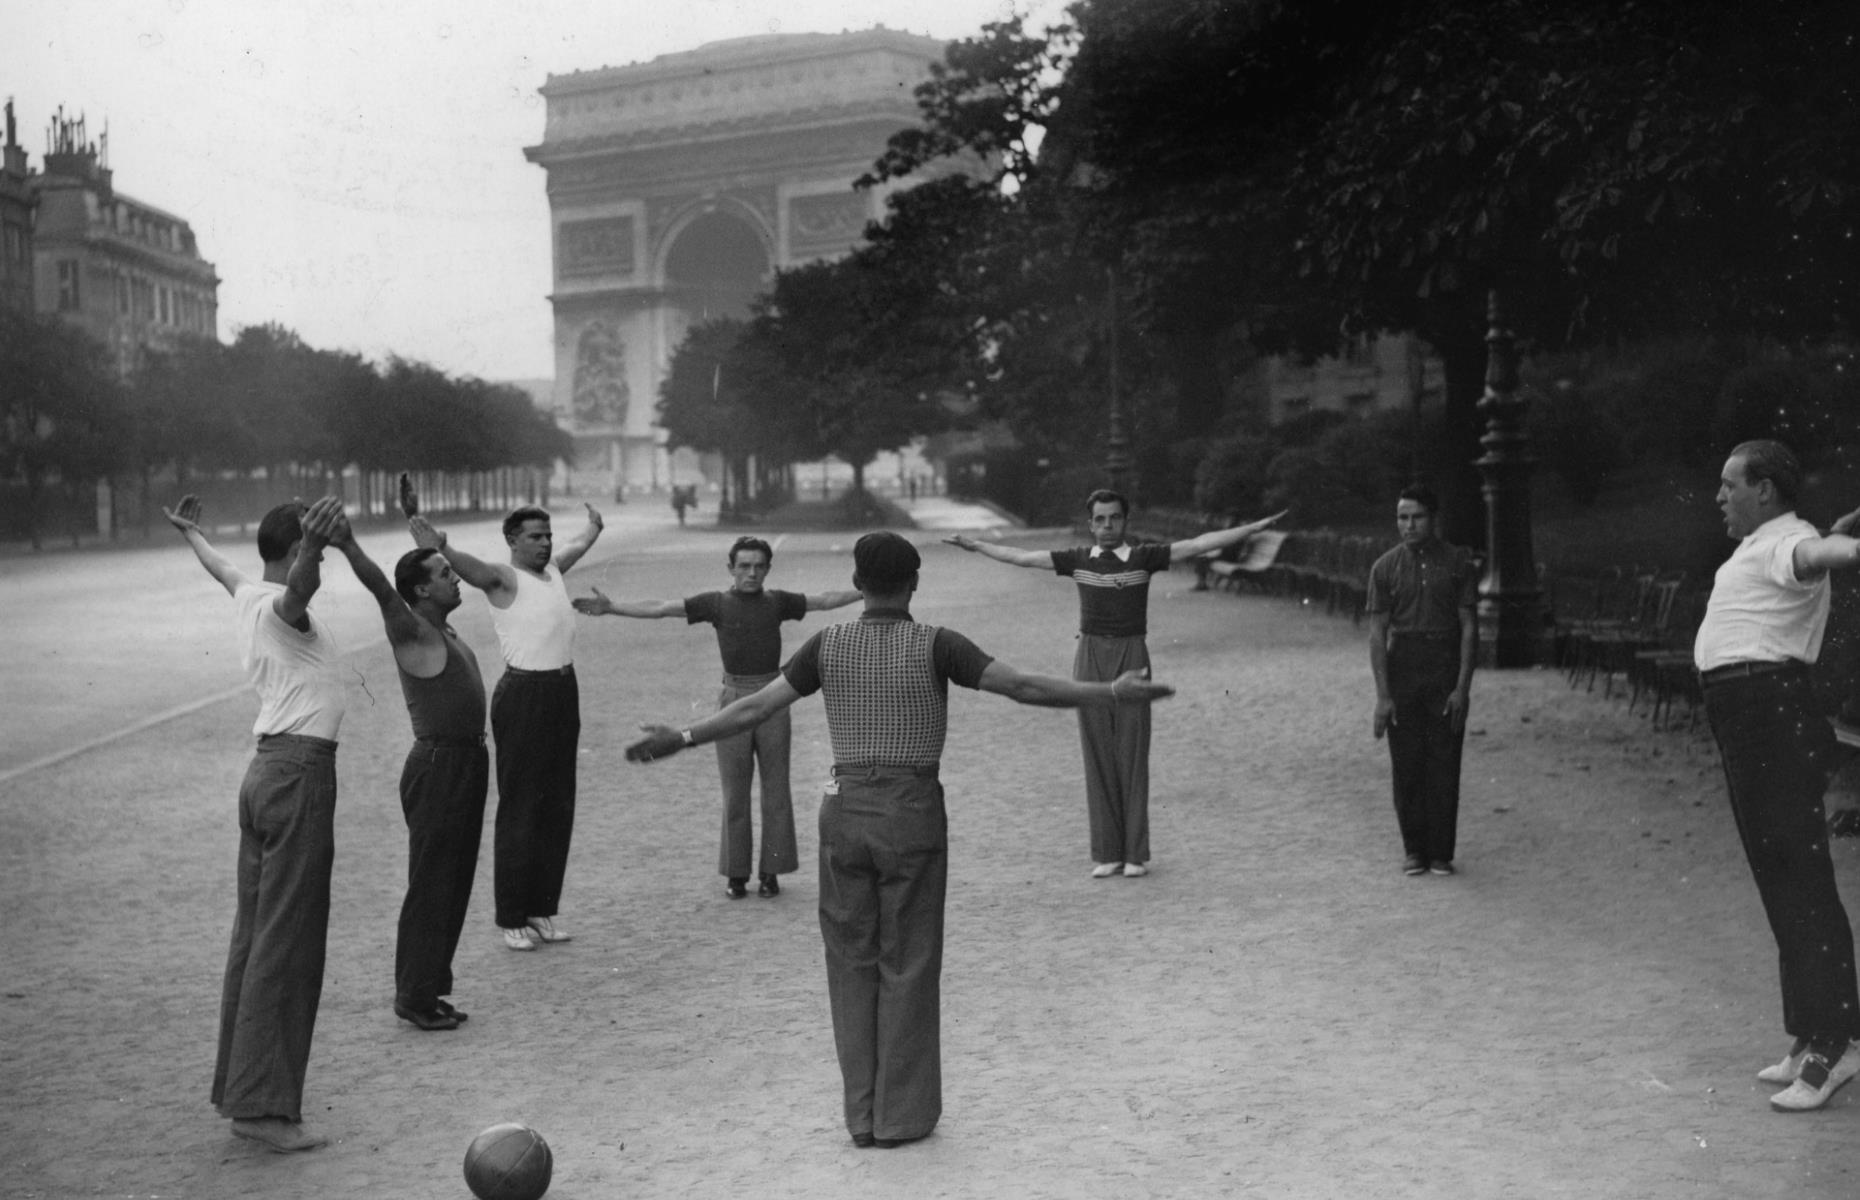 Slide 23 of 51: This striking photograph from the 1920s shows a group of men taking part in an outdoor exercise class next to the Arc de Triomphe – an activity you might have difficulty with during peak season nowadays! The iconic arch was commissioned by Napoleon I in 1806, intended to celebrate the victories of the French army in the Battle of Austerlitz (1805) and it took 30 years to build.